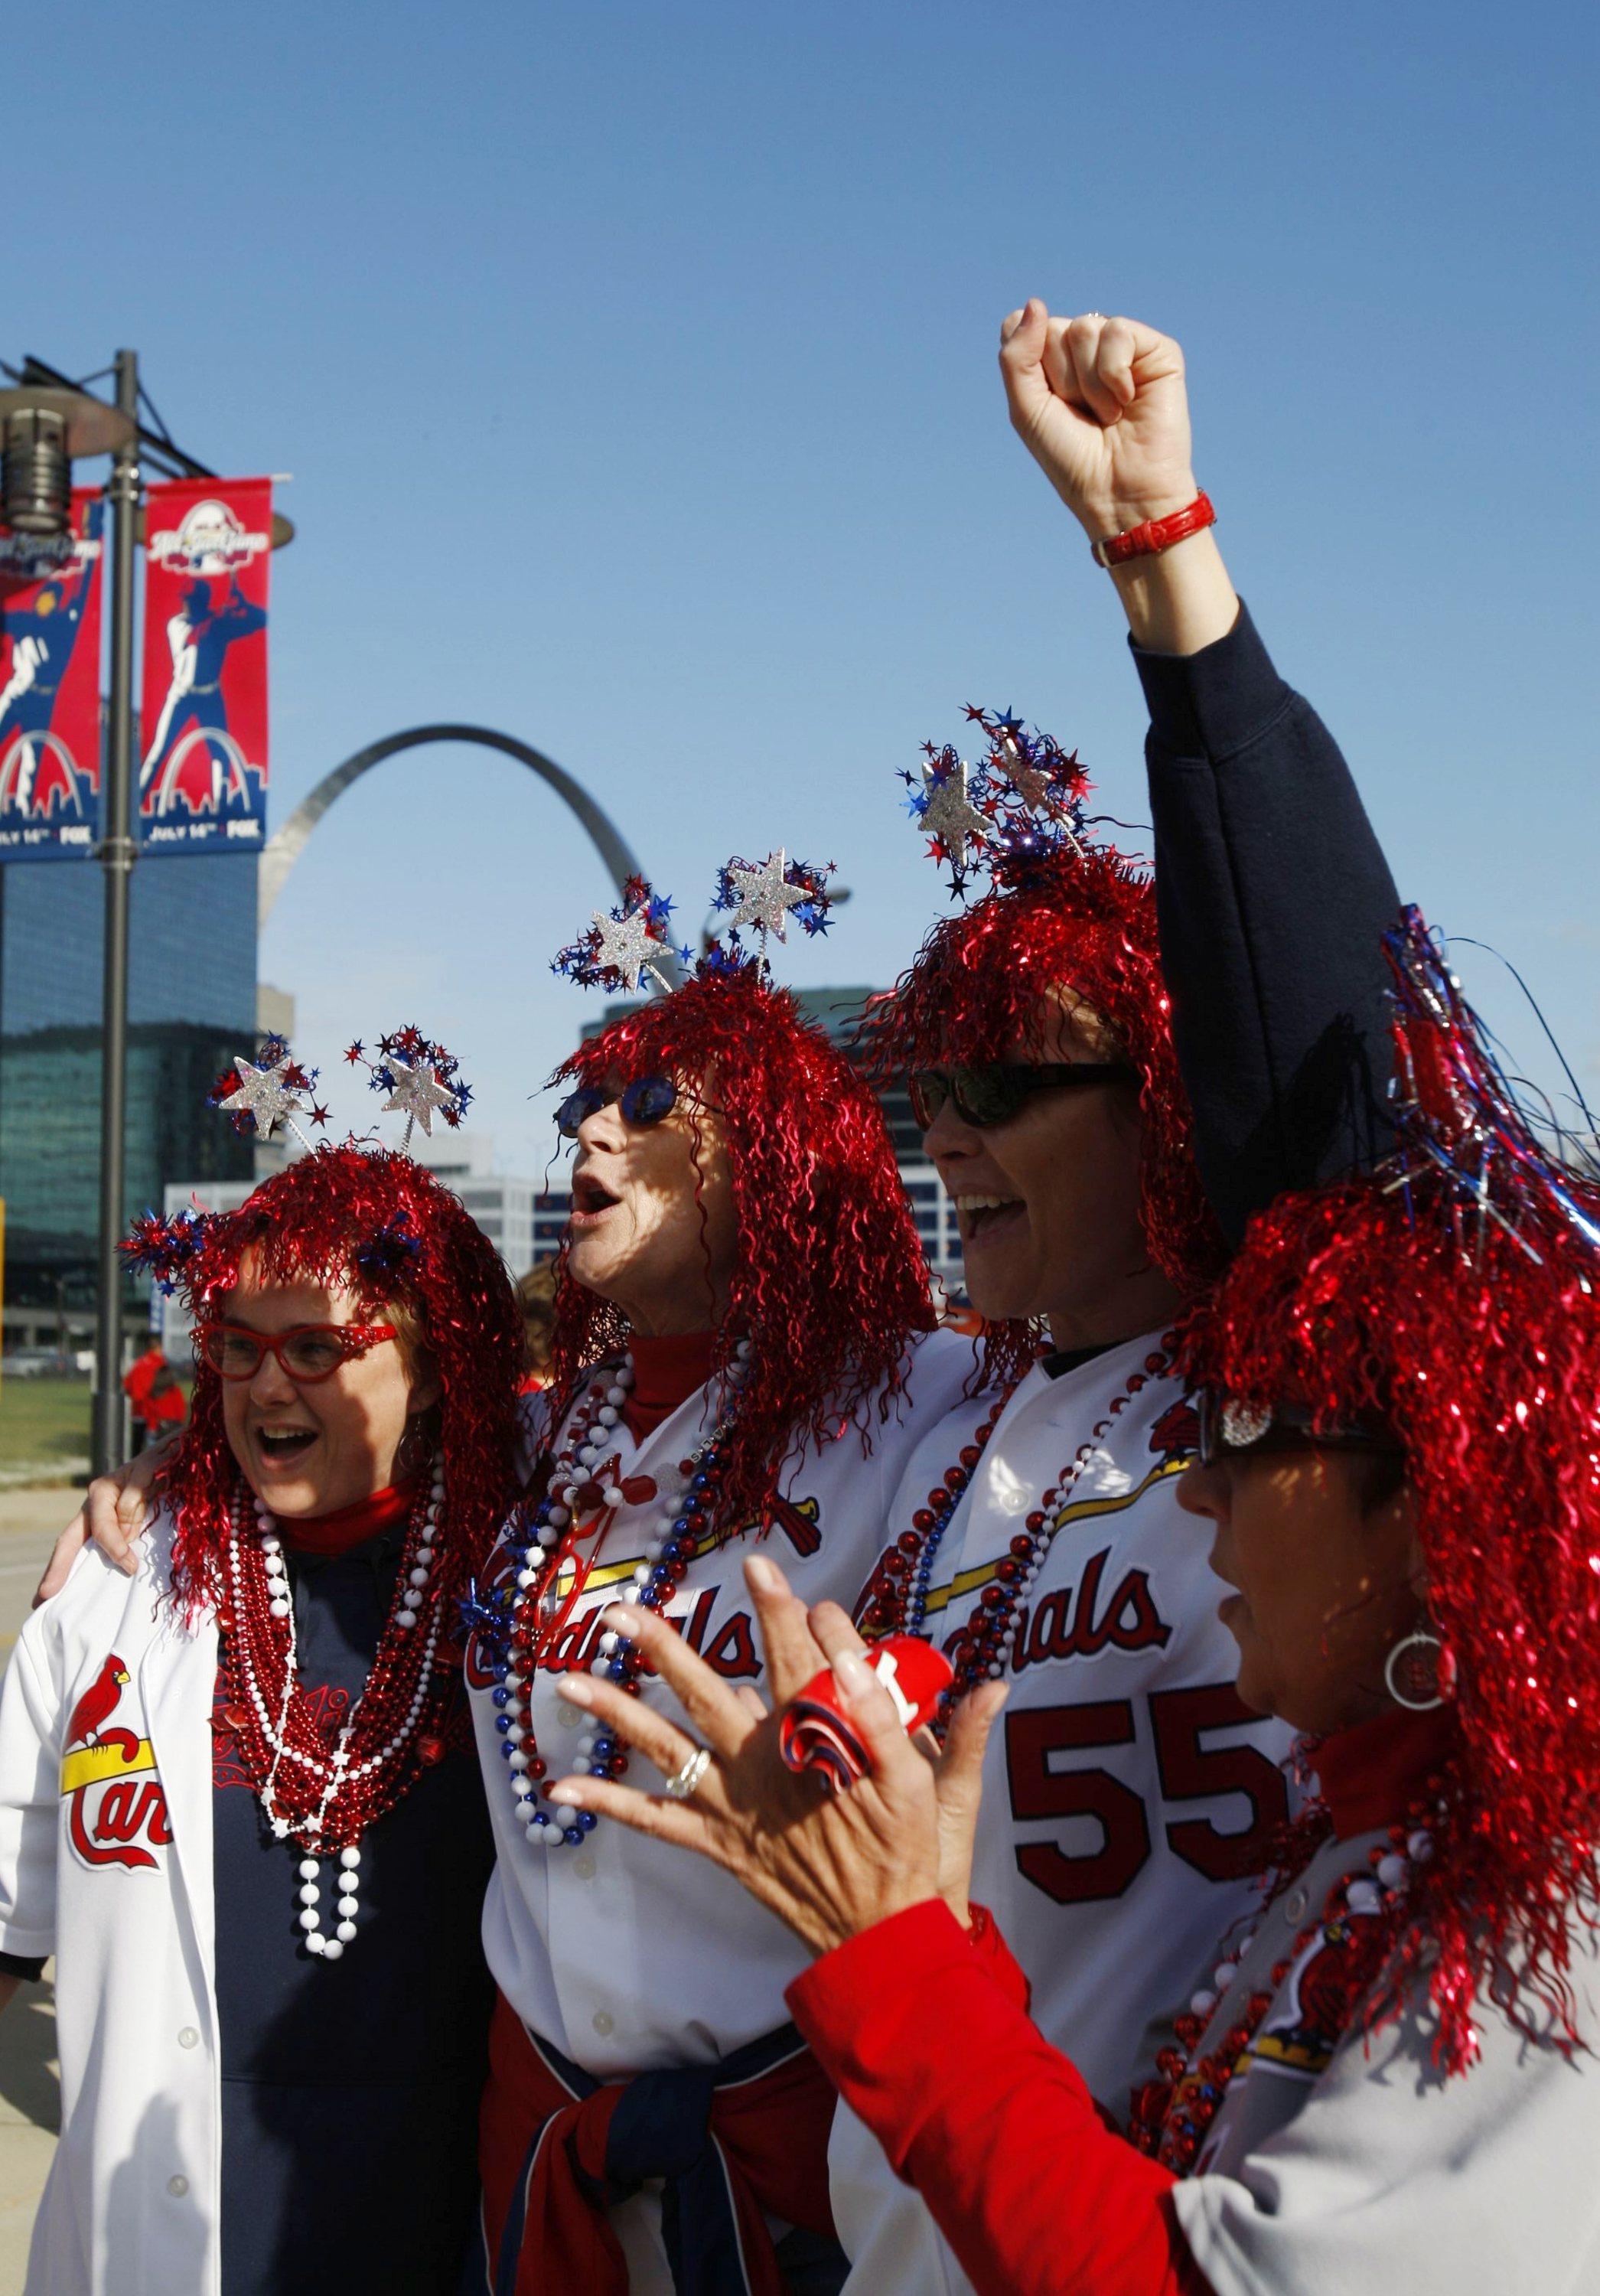 ST. LOUIS, MO - OCTOBER 10:  Fans of the St. Louis Cardinals cheer for their team before the start of Game Three of the NLDS during the 2009 MLB Playoffs against of the Los Angeles Dodgers at Busch Stadium on October 10, 2009 in St. Louis, Missouri. (Phot